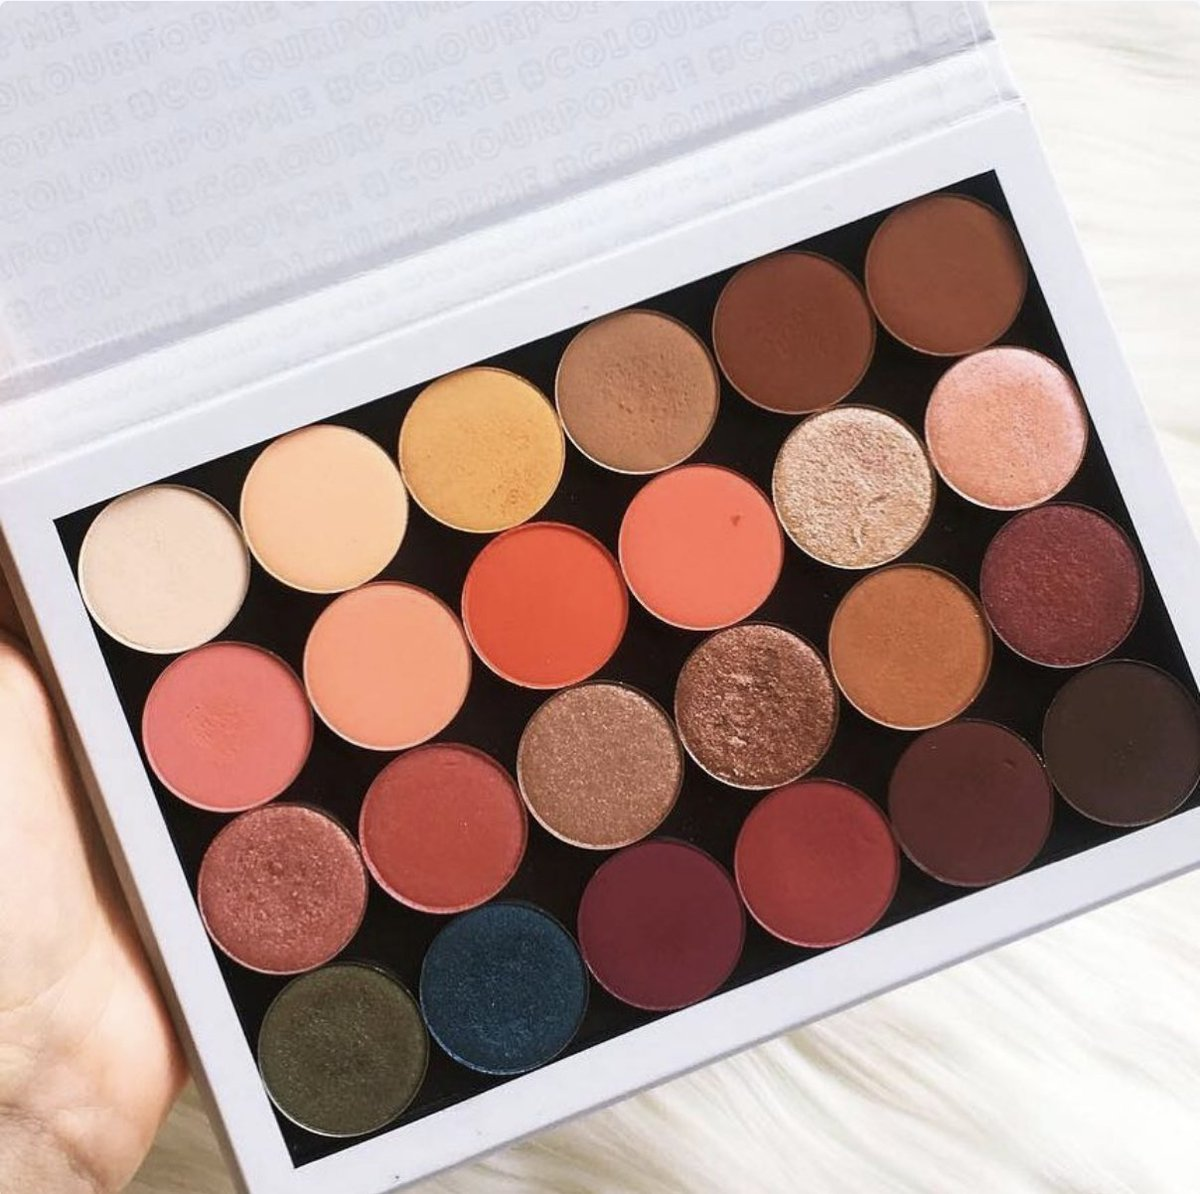 Image result for colourpop build your own palette